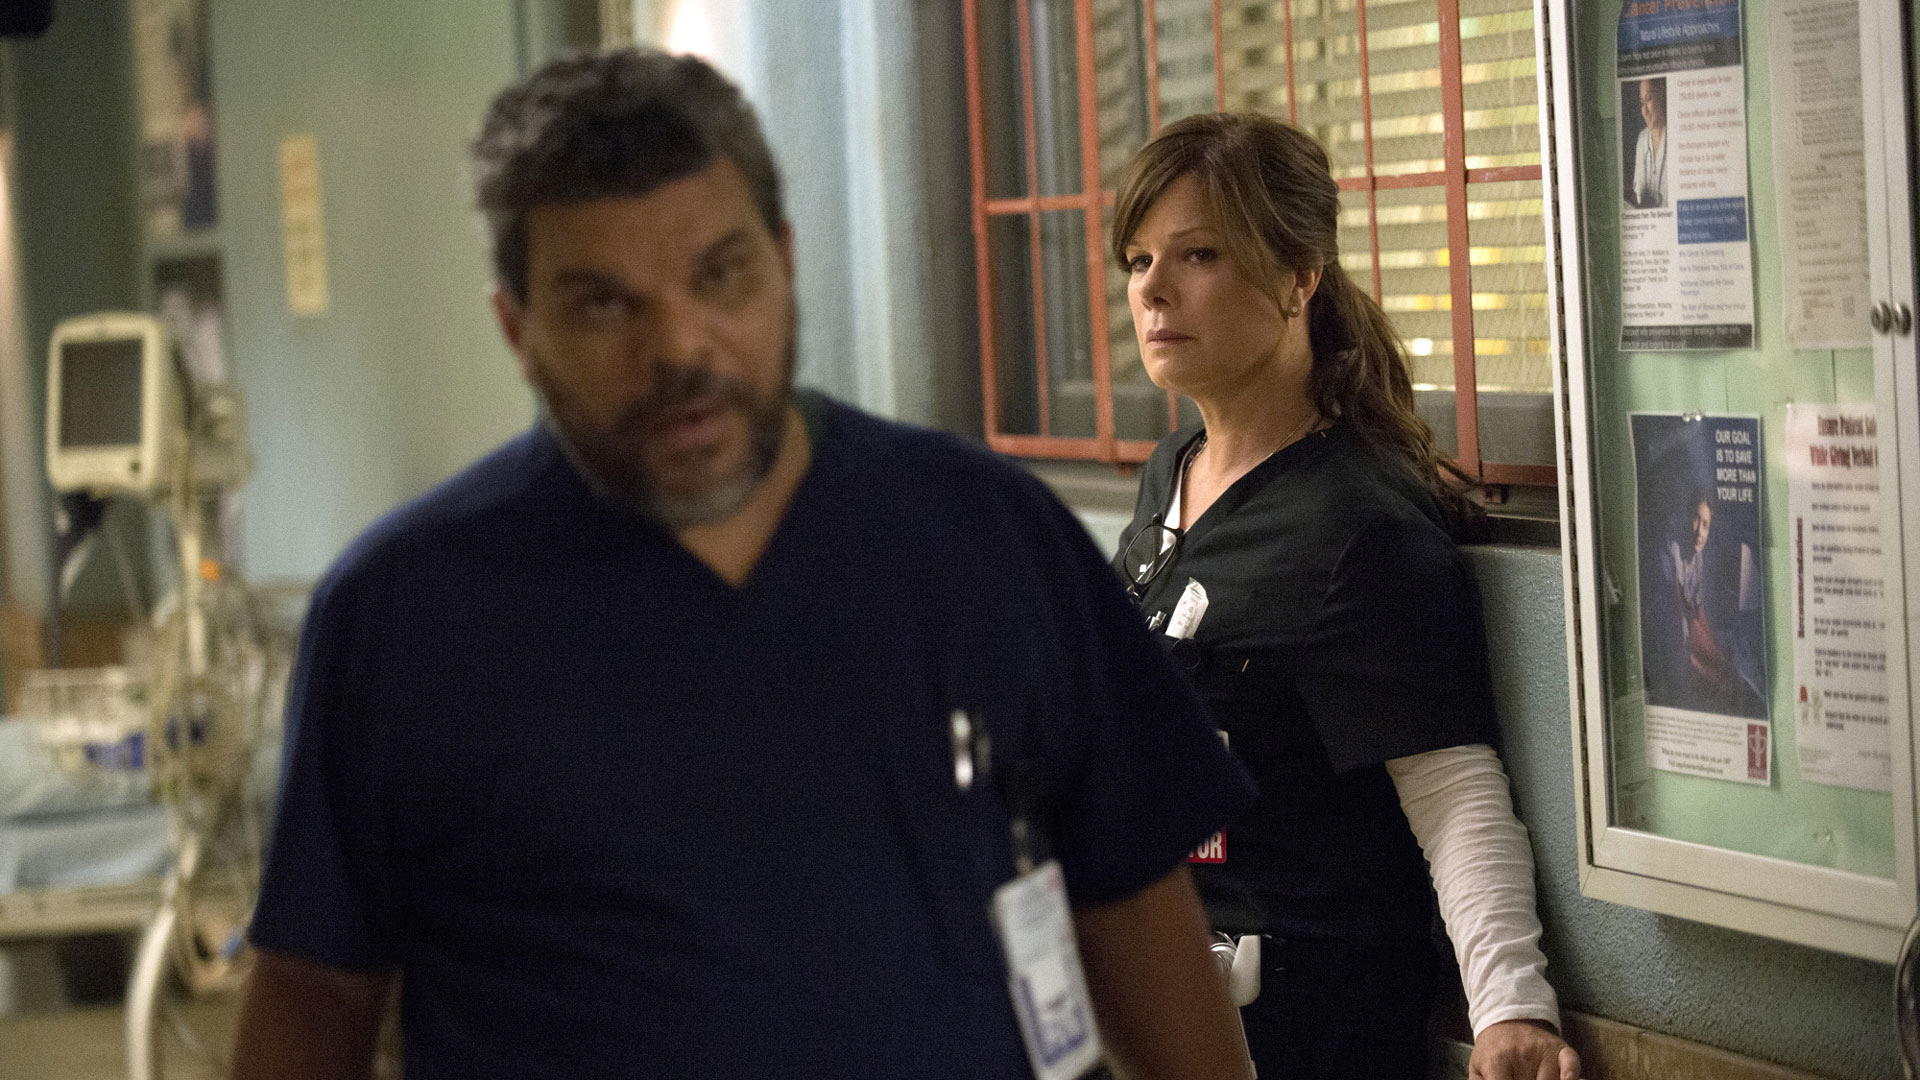 Luis Guzmán as Jesse Sallander and Marcia Gay Harden as Dr. Leanne Rorish